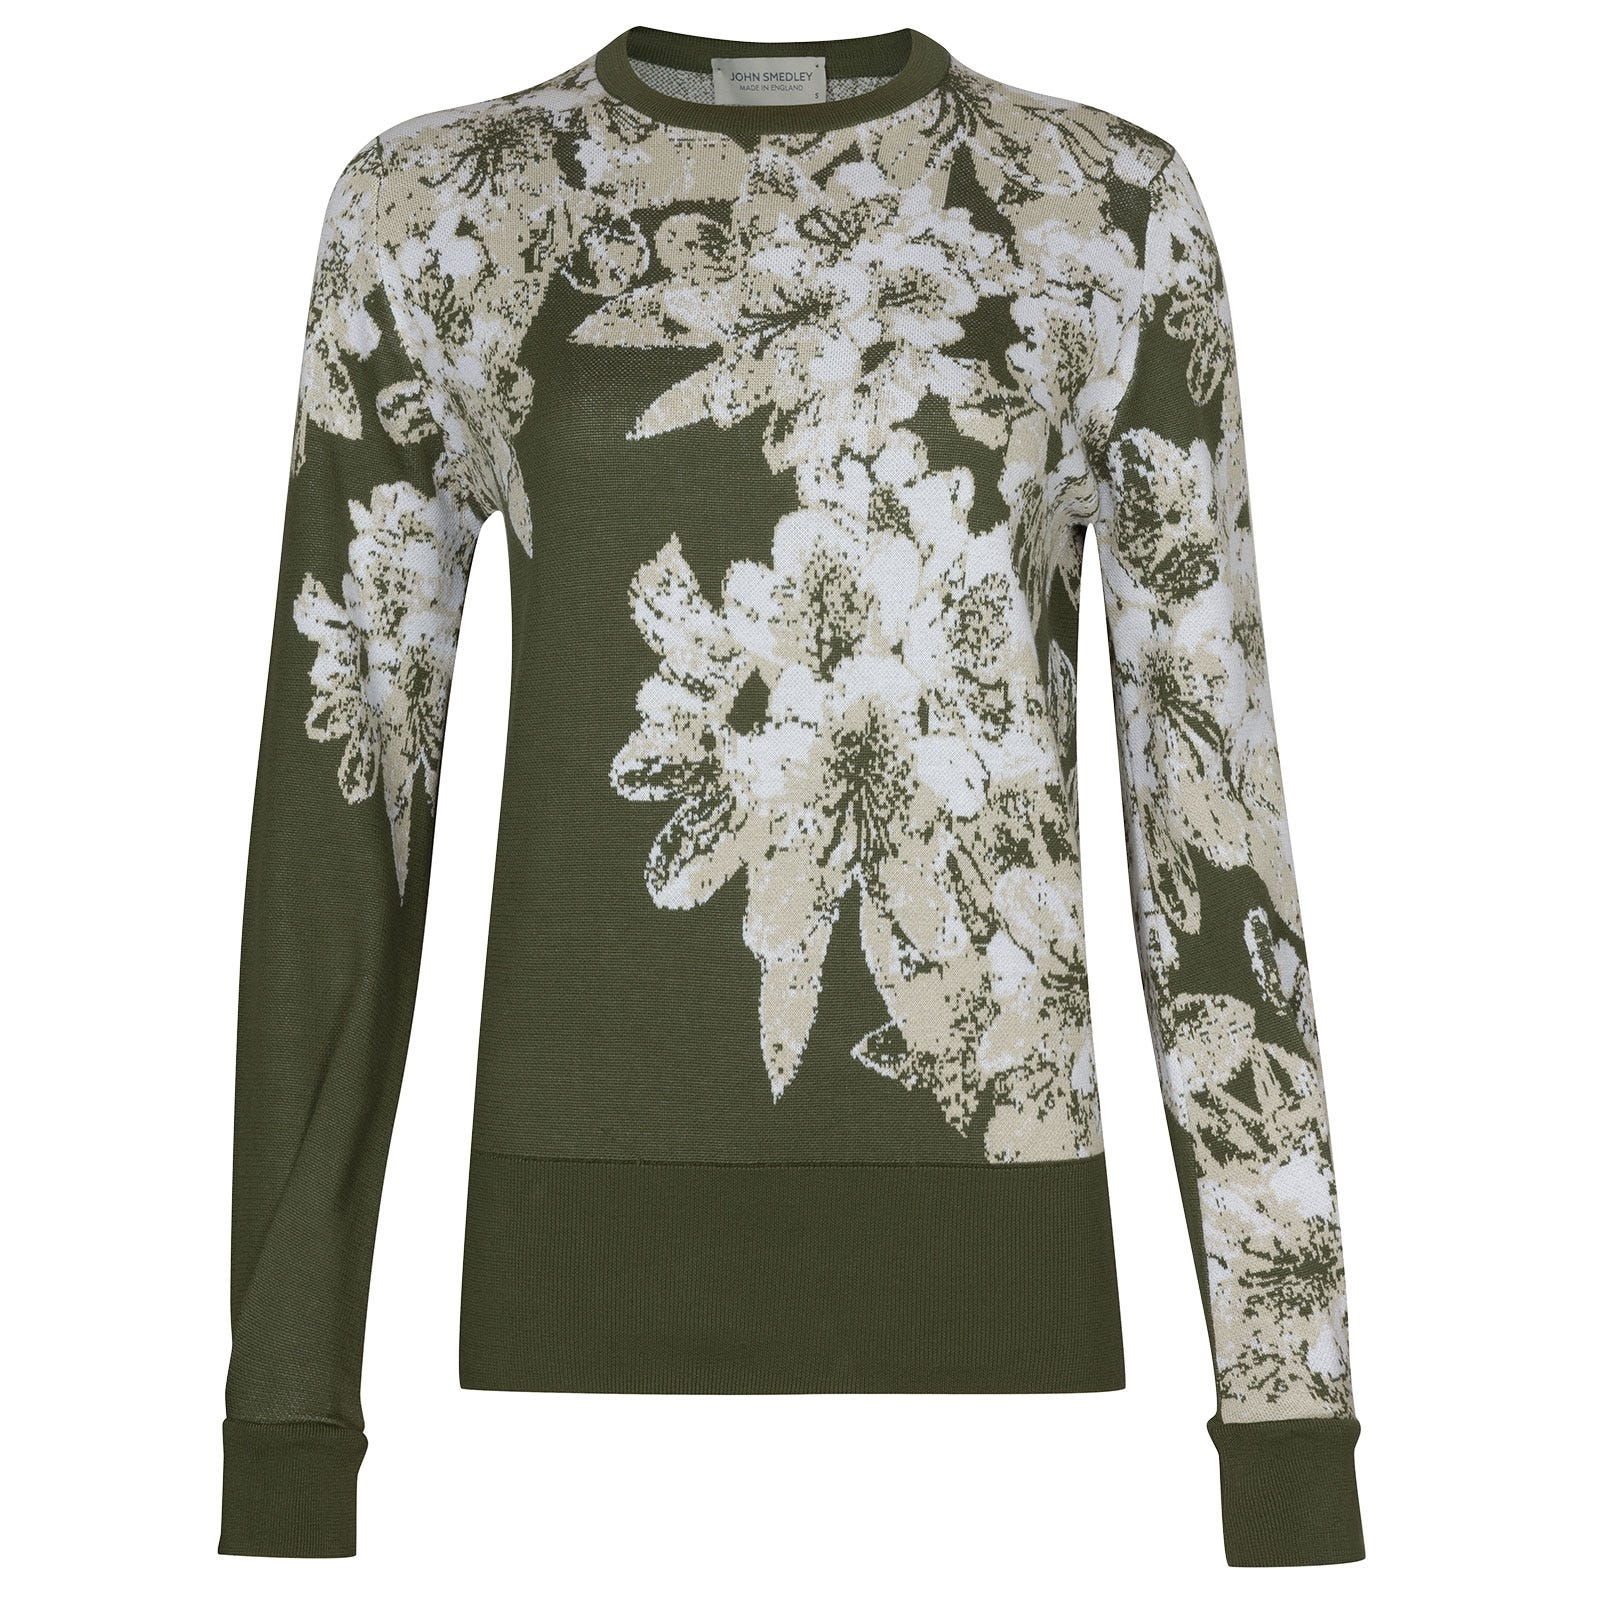 John Smedley Aster in Sepal Green Sweater-LGE